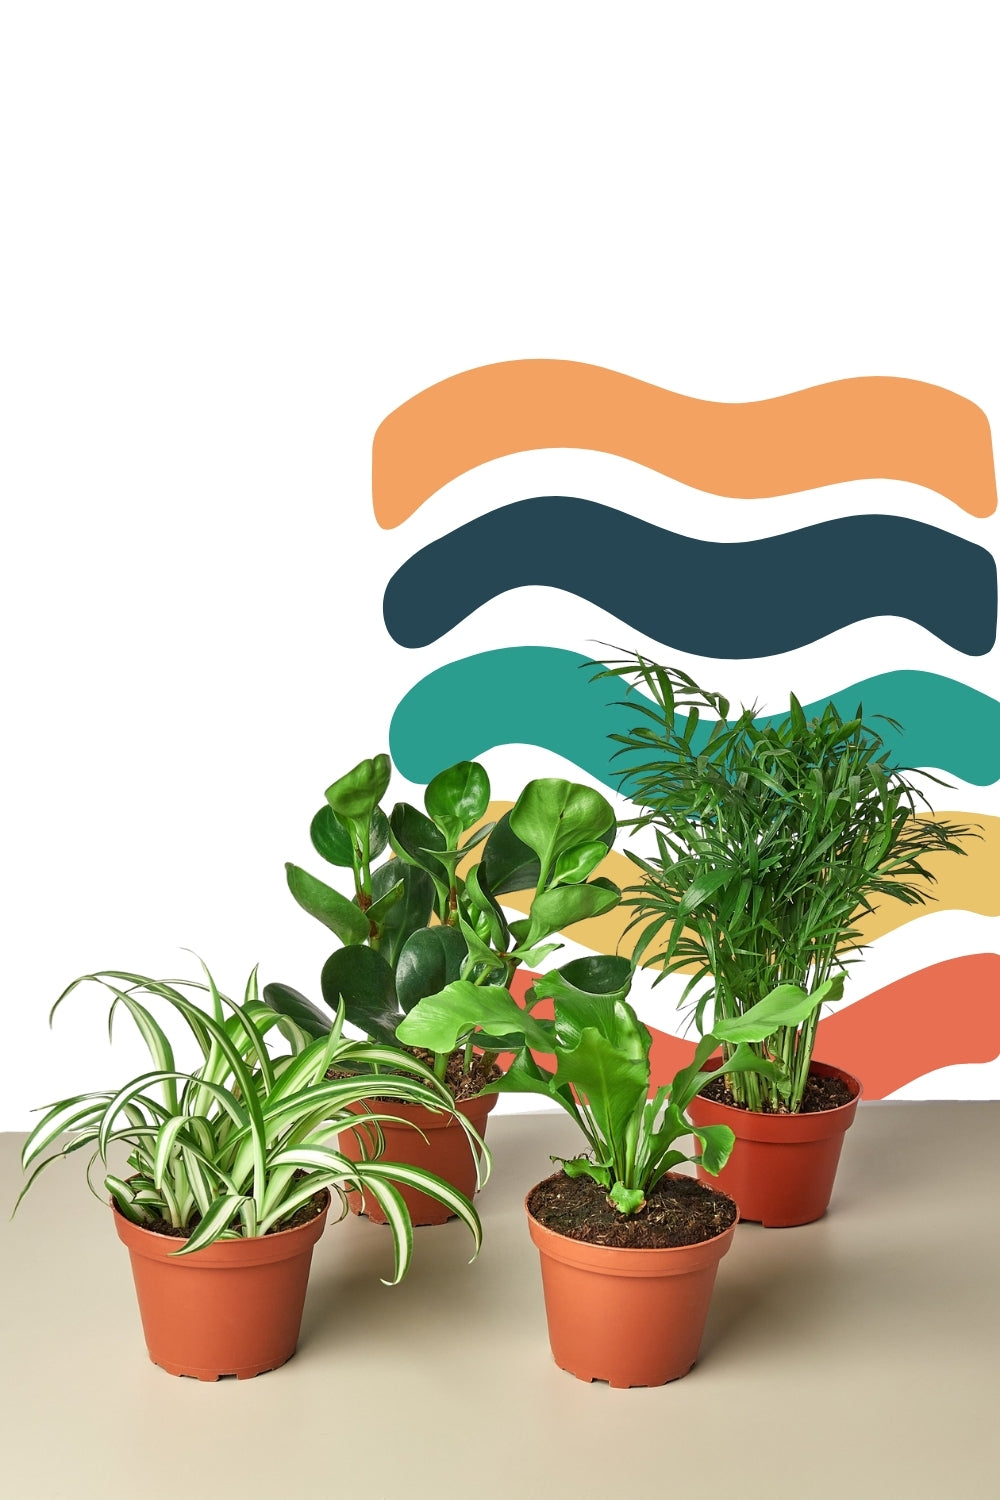 Pet Friendly Plants bundles, pet safe plants, bulk houseplants, best pet safe indoor plants